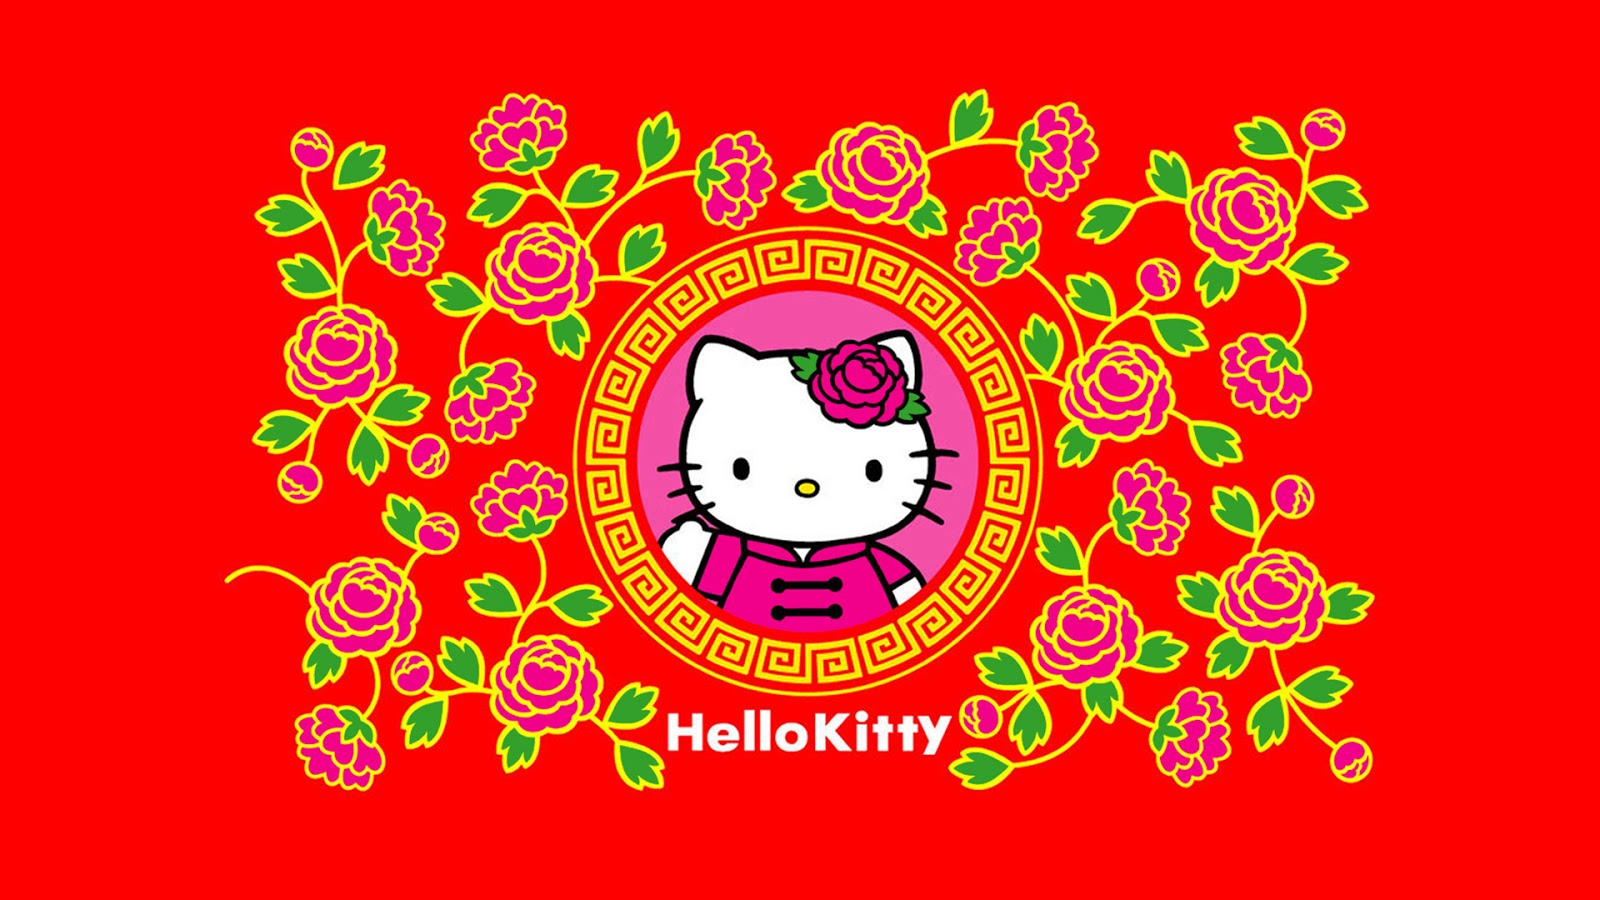 Hello Kitty Pink Cute Wallpaper Bergerak Wallpaper Android Iphone Wallpaper Hello Kitty Hd